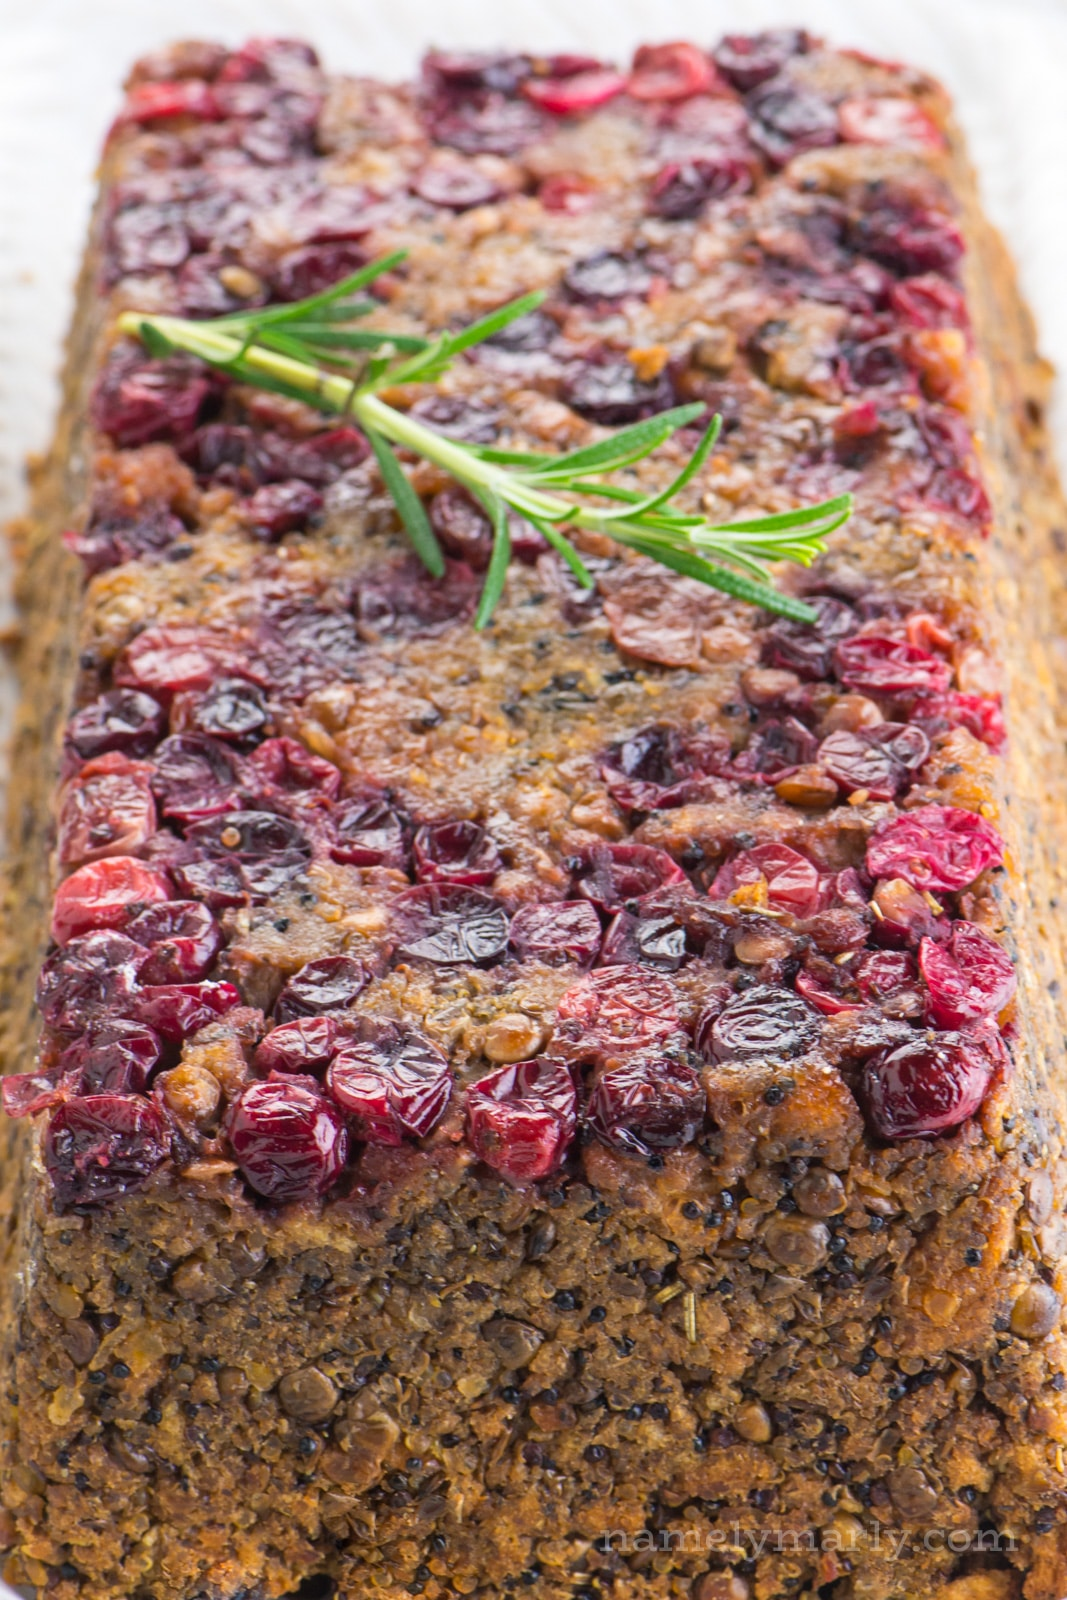 We love this vegan holiday lentil loaf with stuffing and cranberries for our Thanksgiving and Christmas holiday dinners!